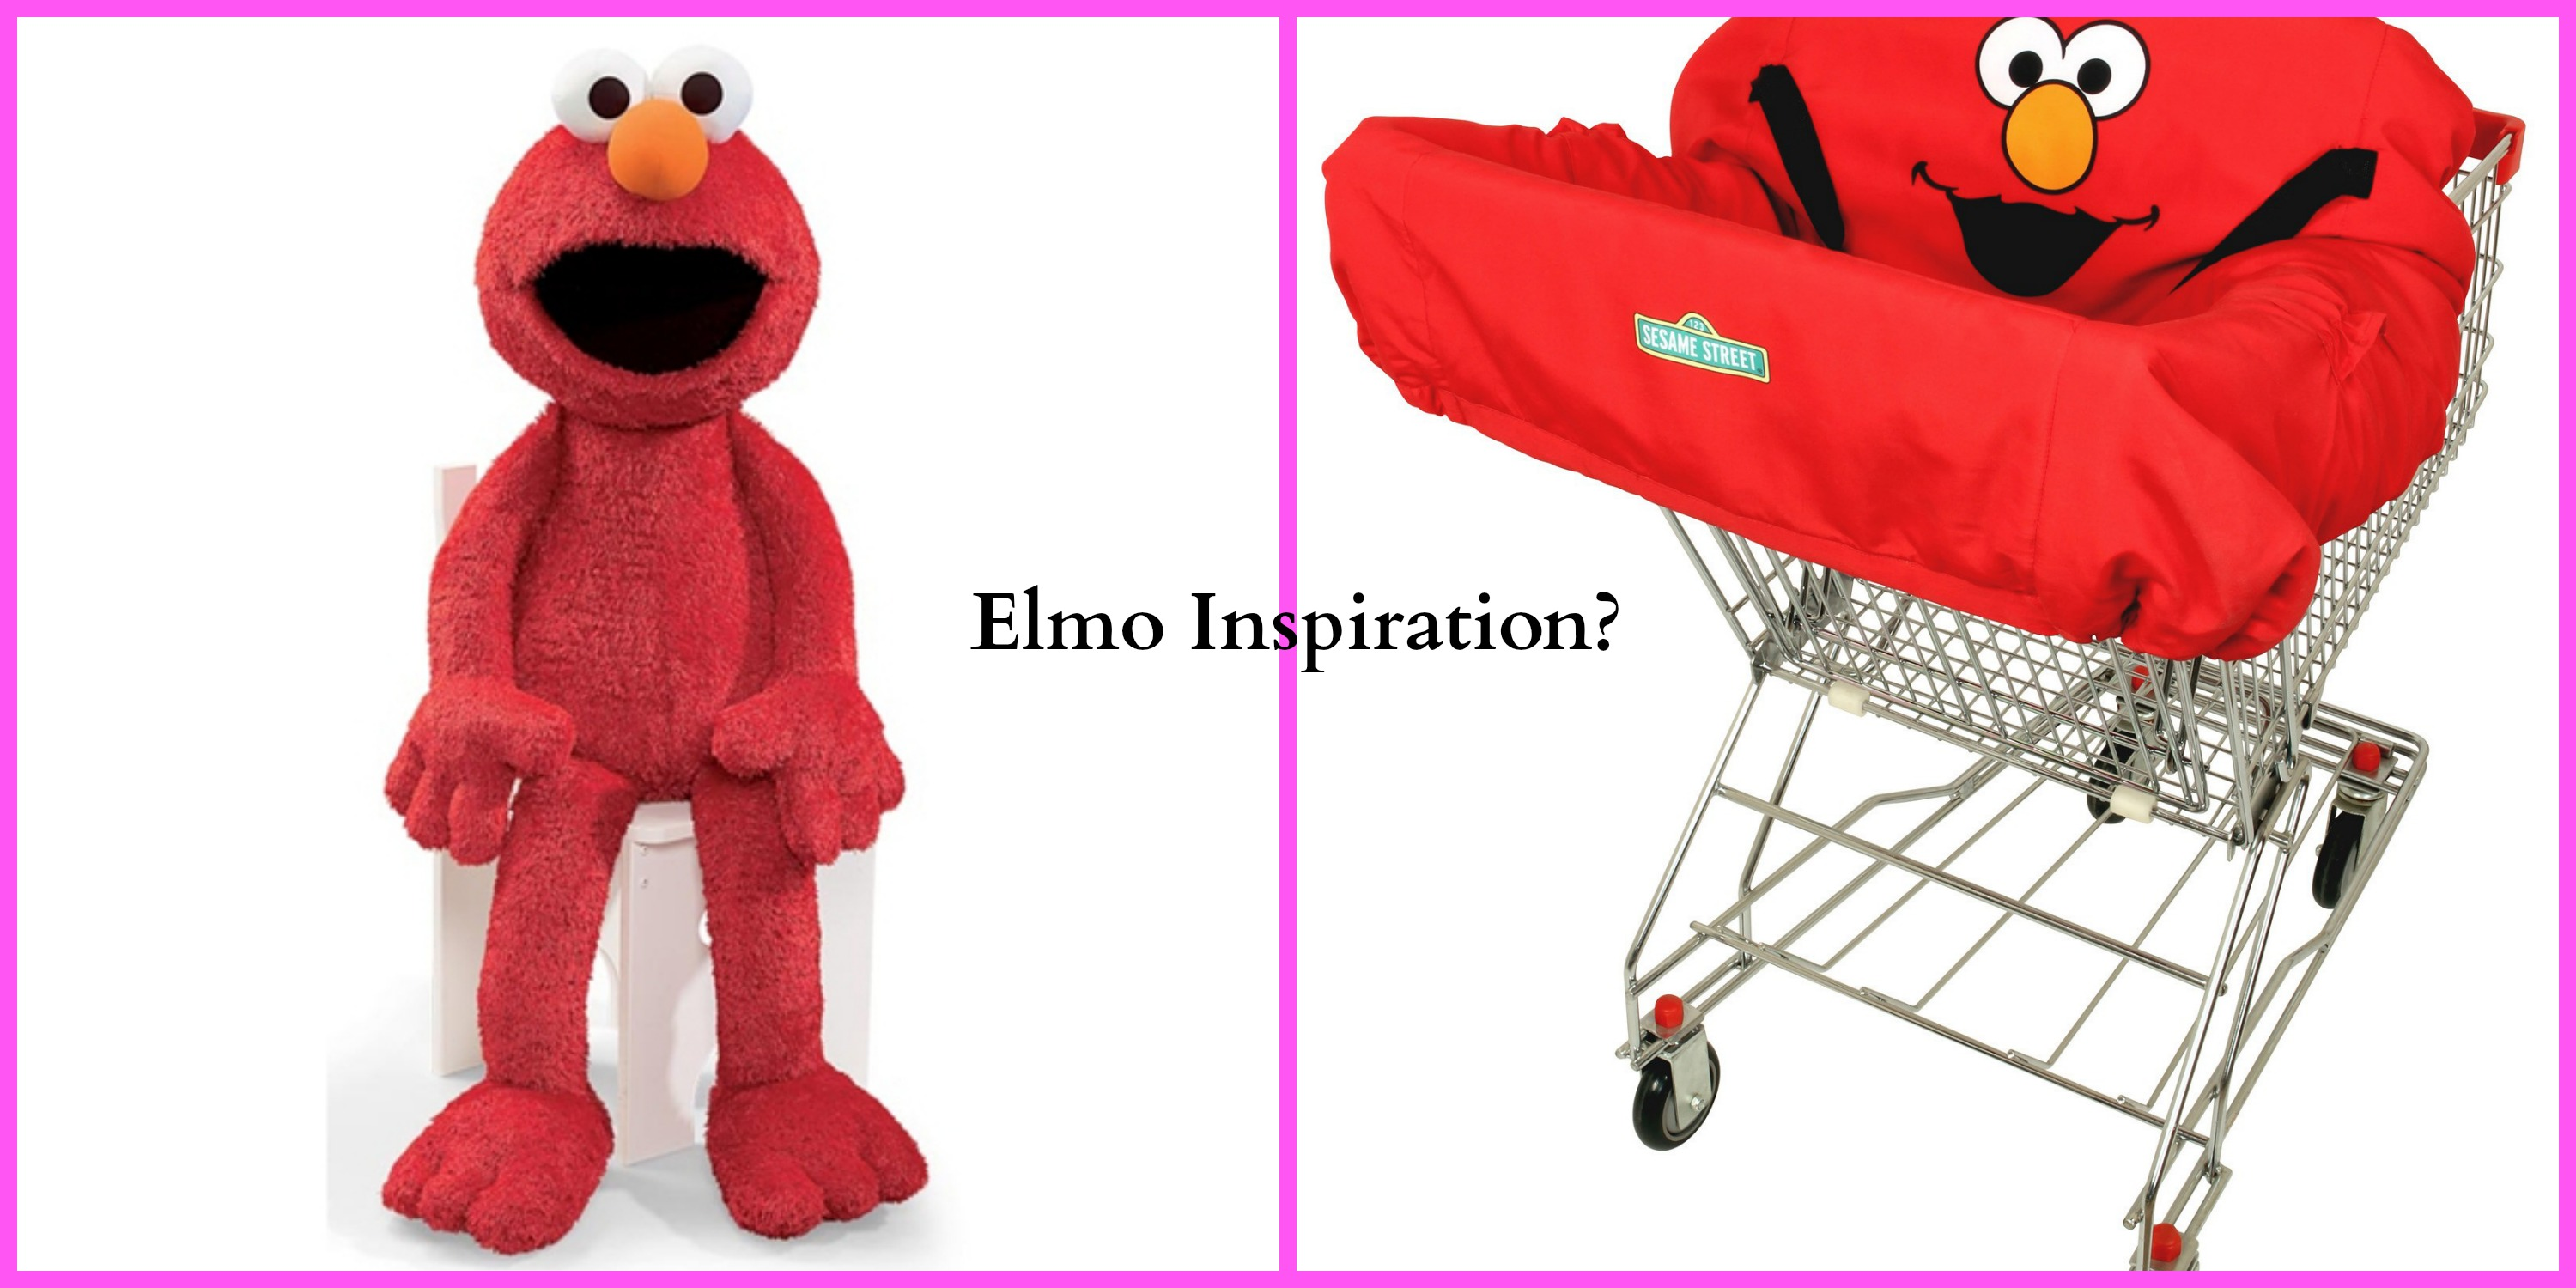 5 Adorable Elmo-Inspired Products For Toddlers